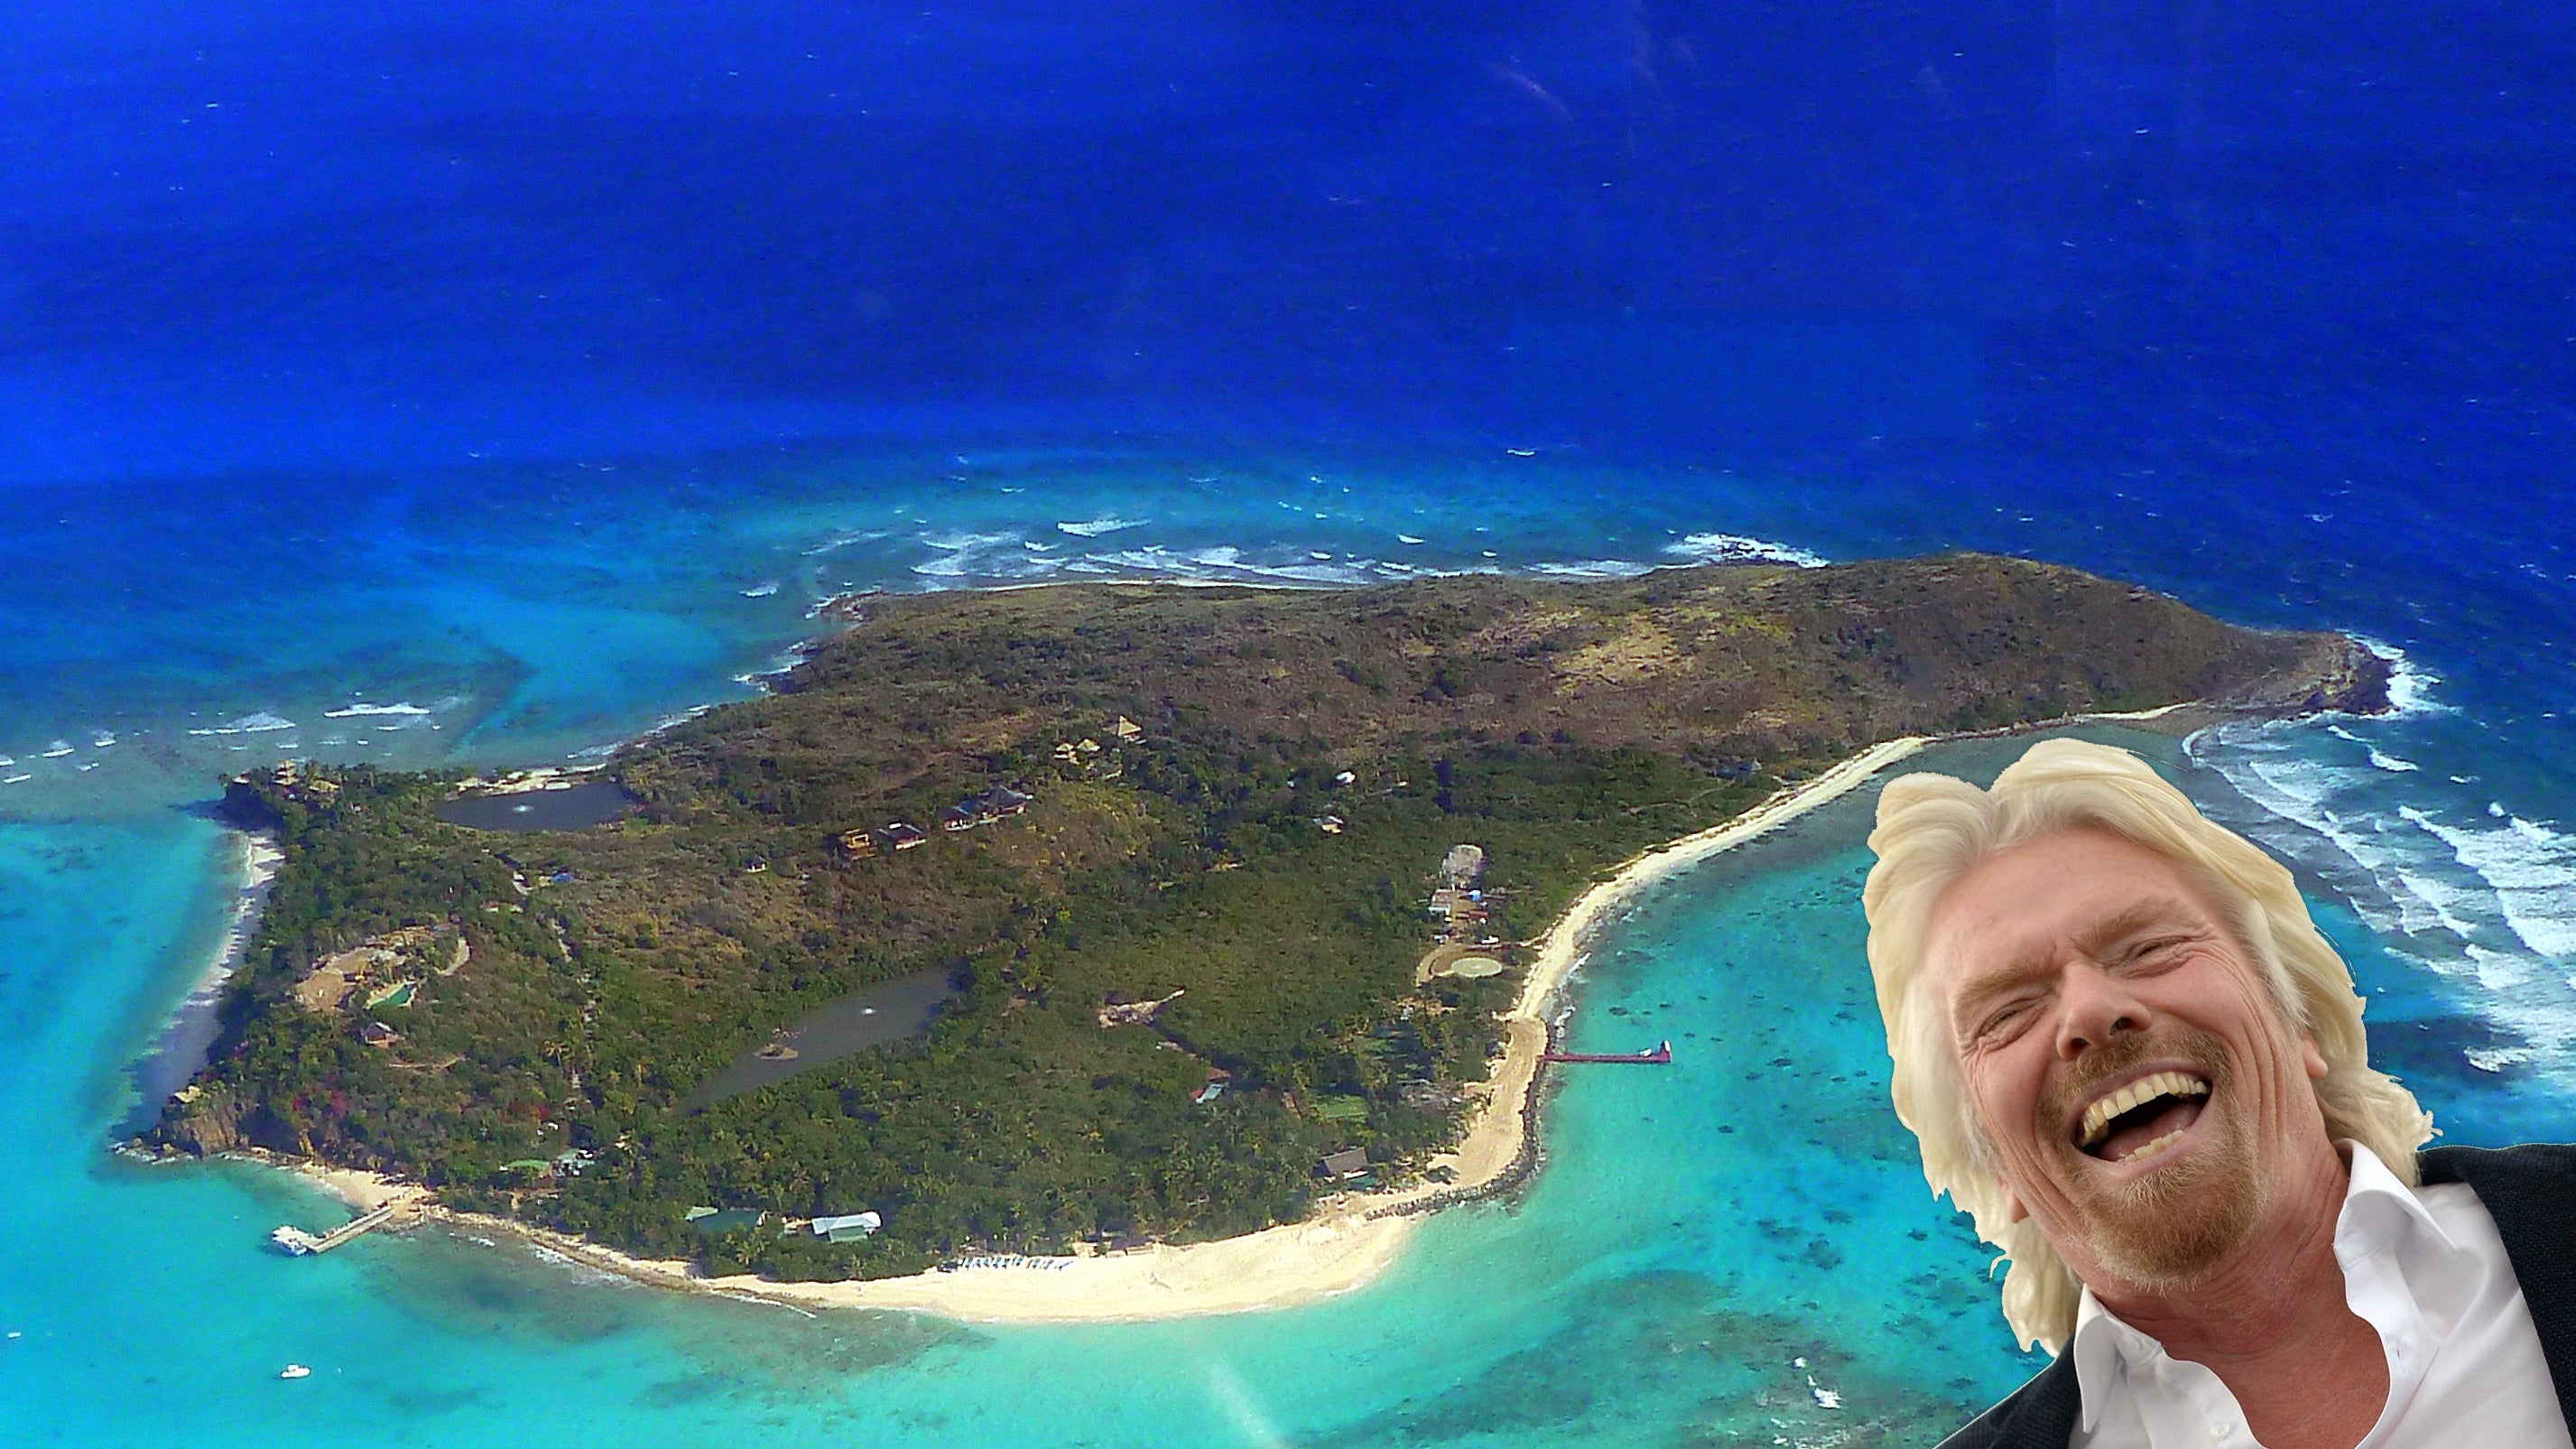 Sir Richard Branson to ride out Hurricane Irma on Necker Island